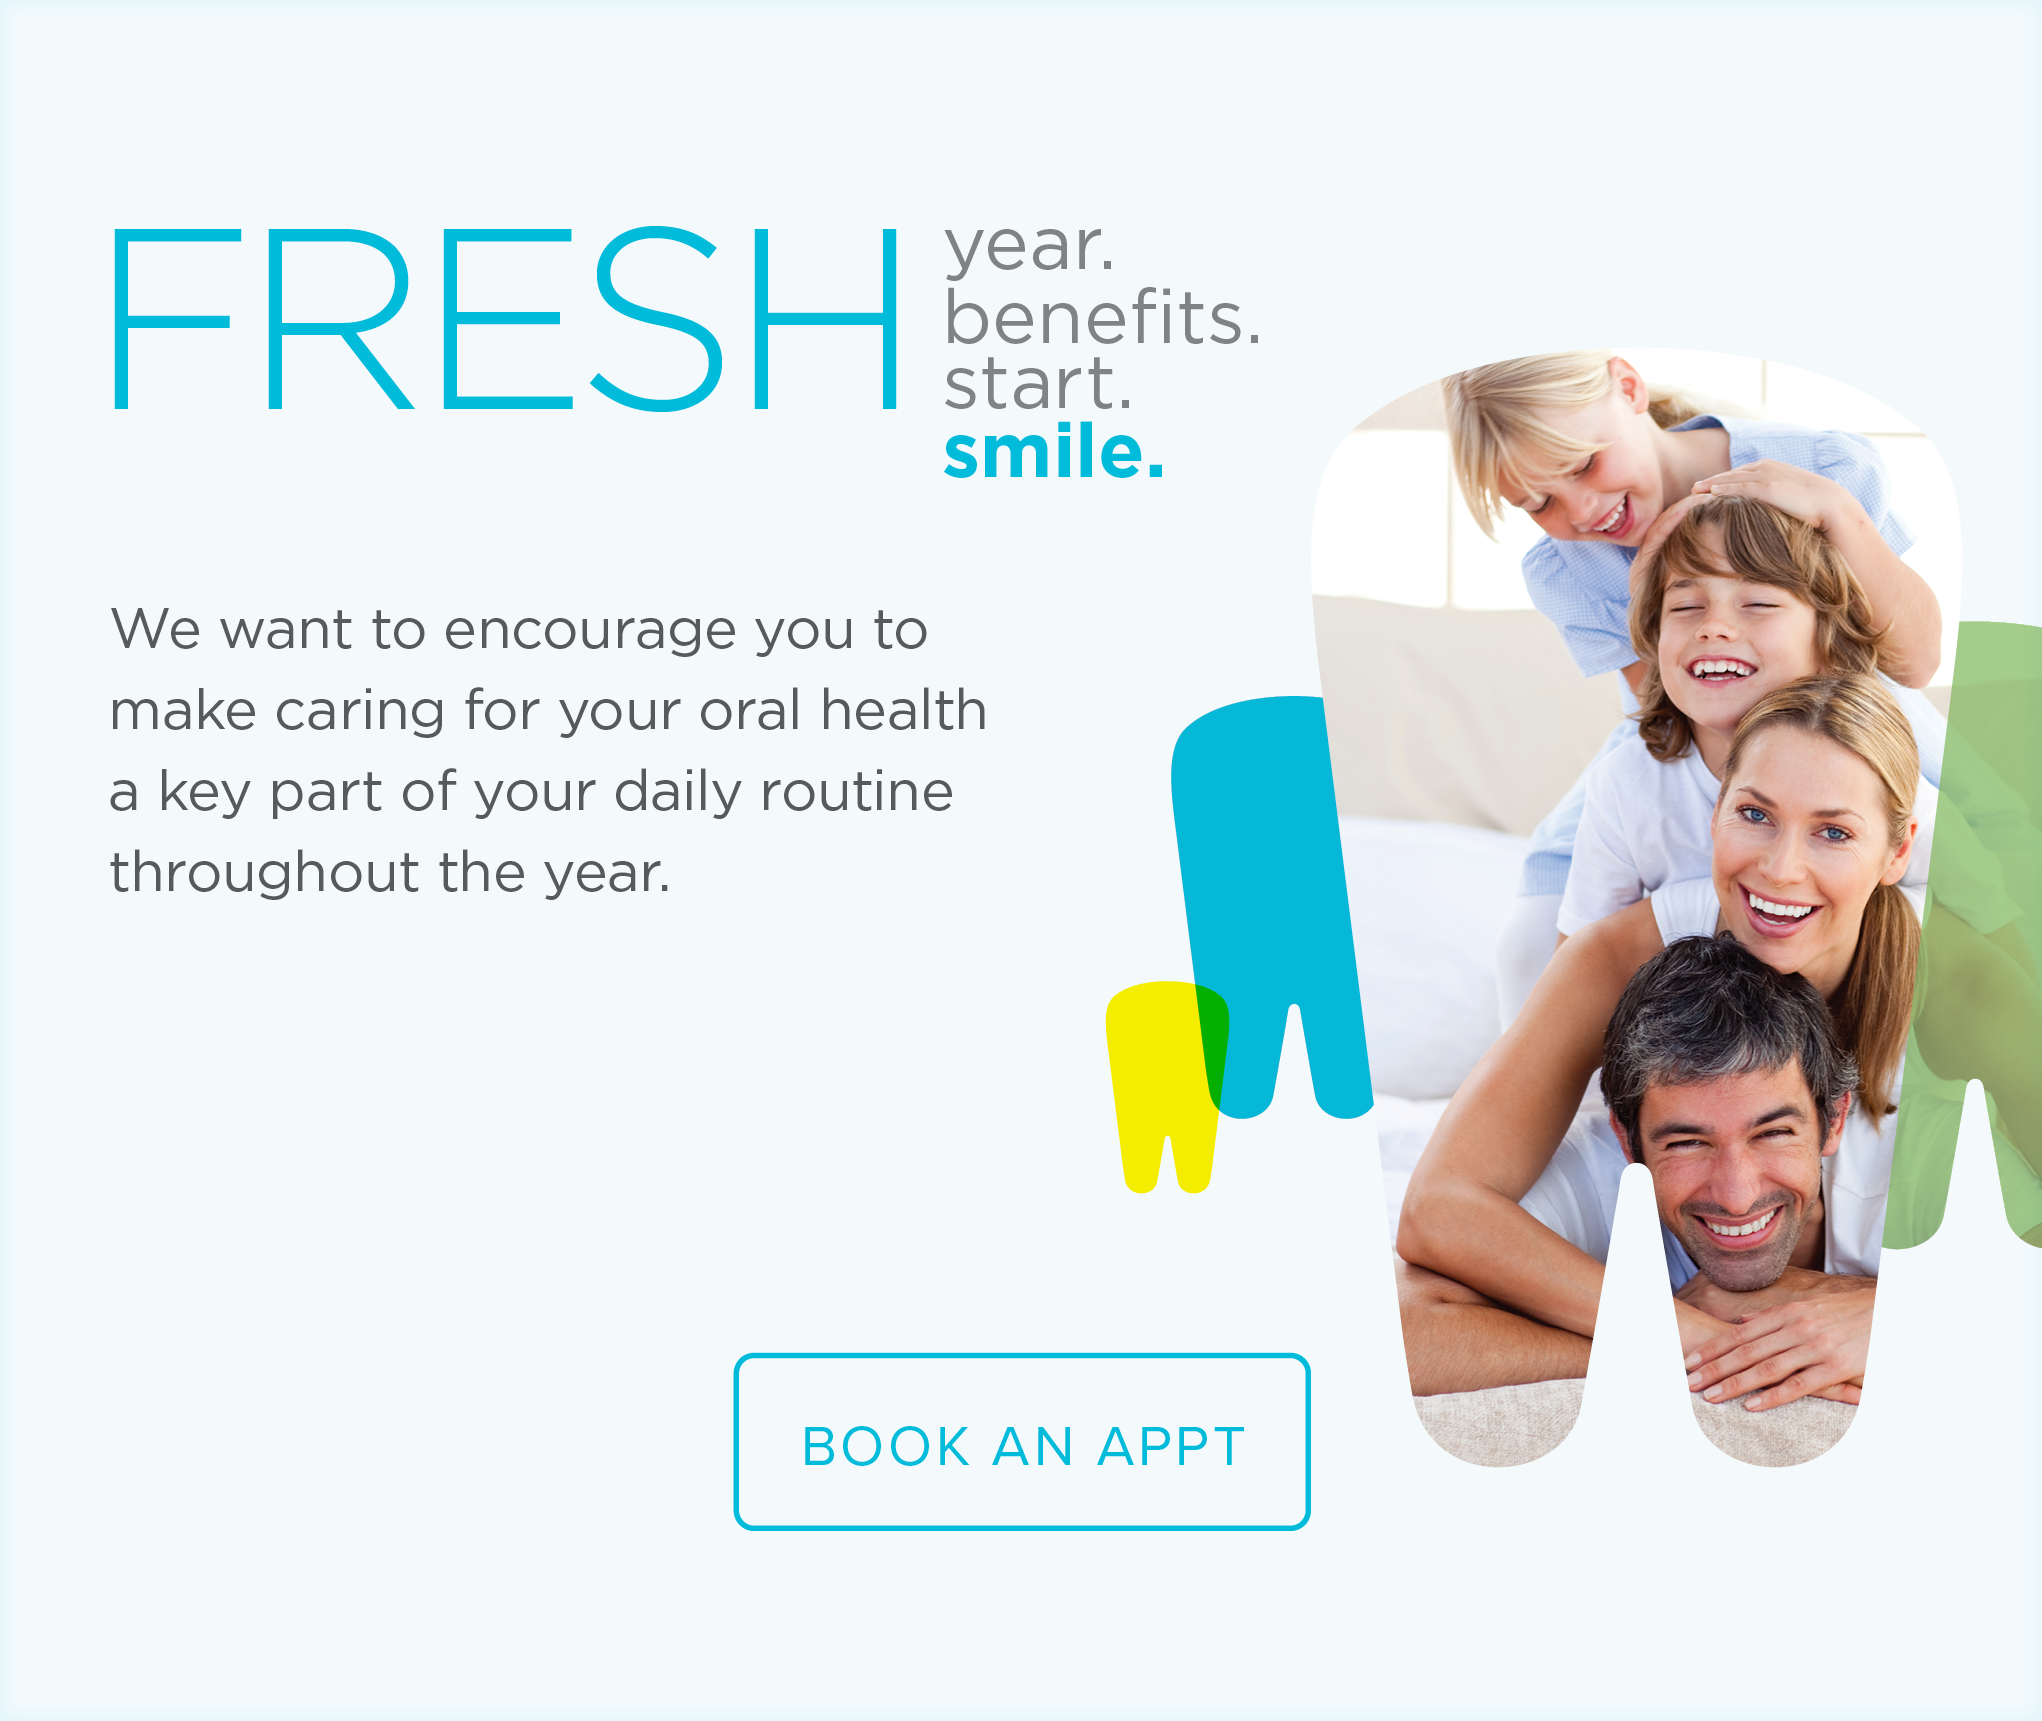 Brighton Modern Dentistry and Orthodontics - Make the Most of Your Benefits